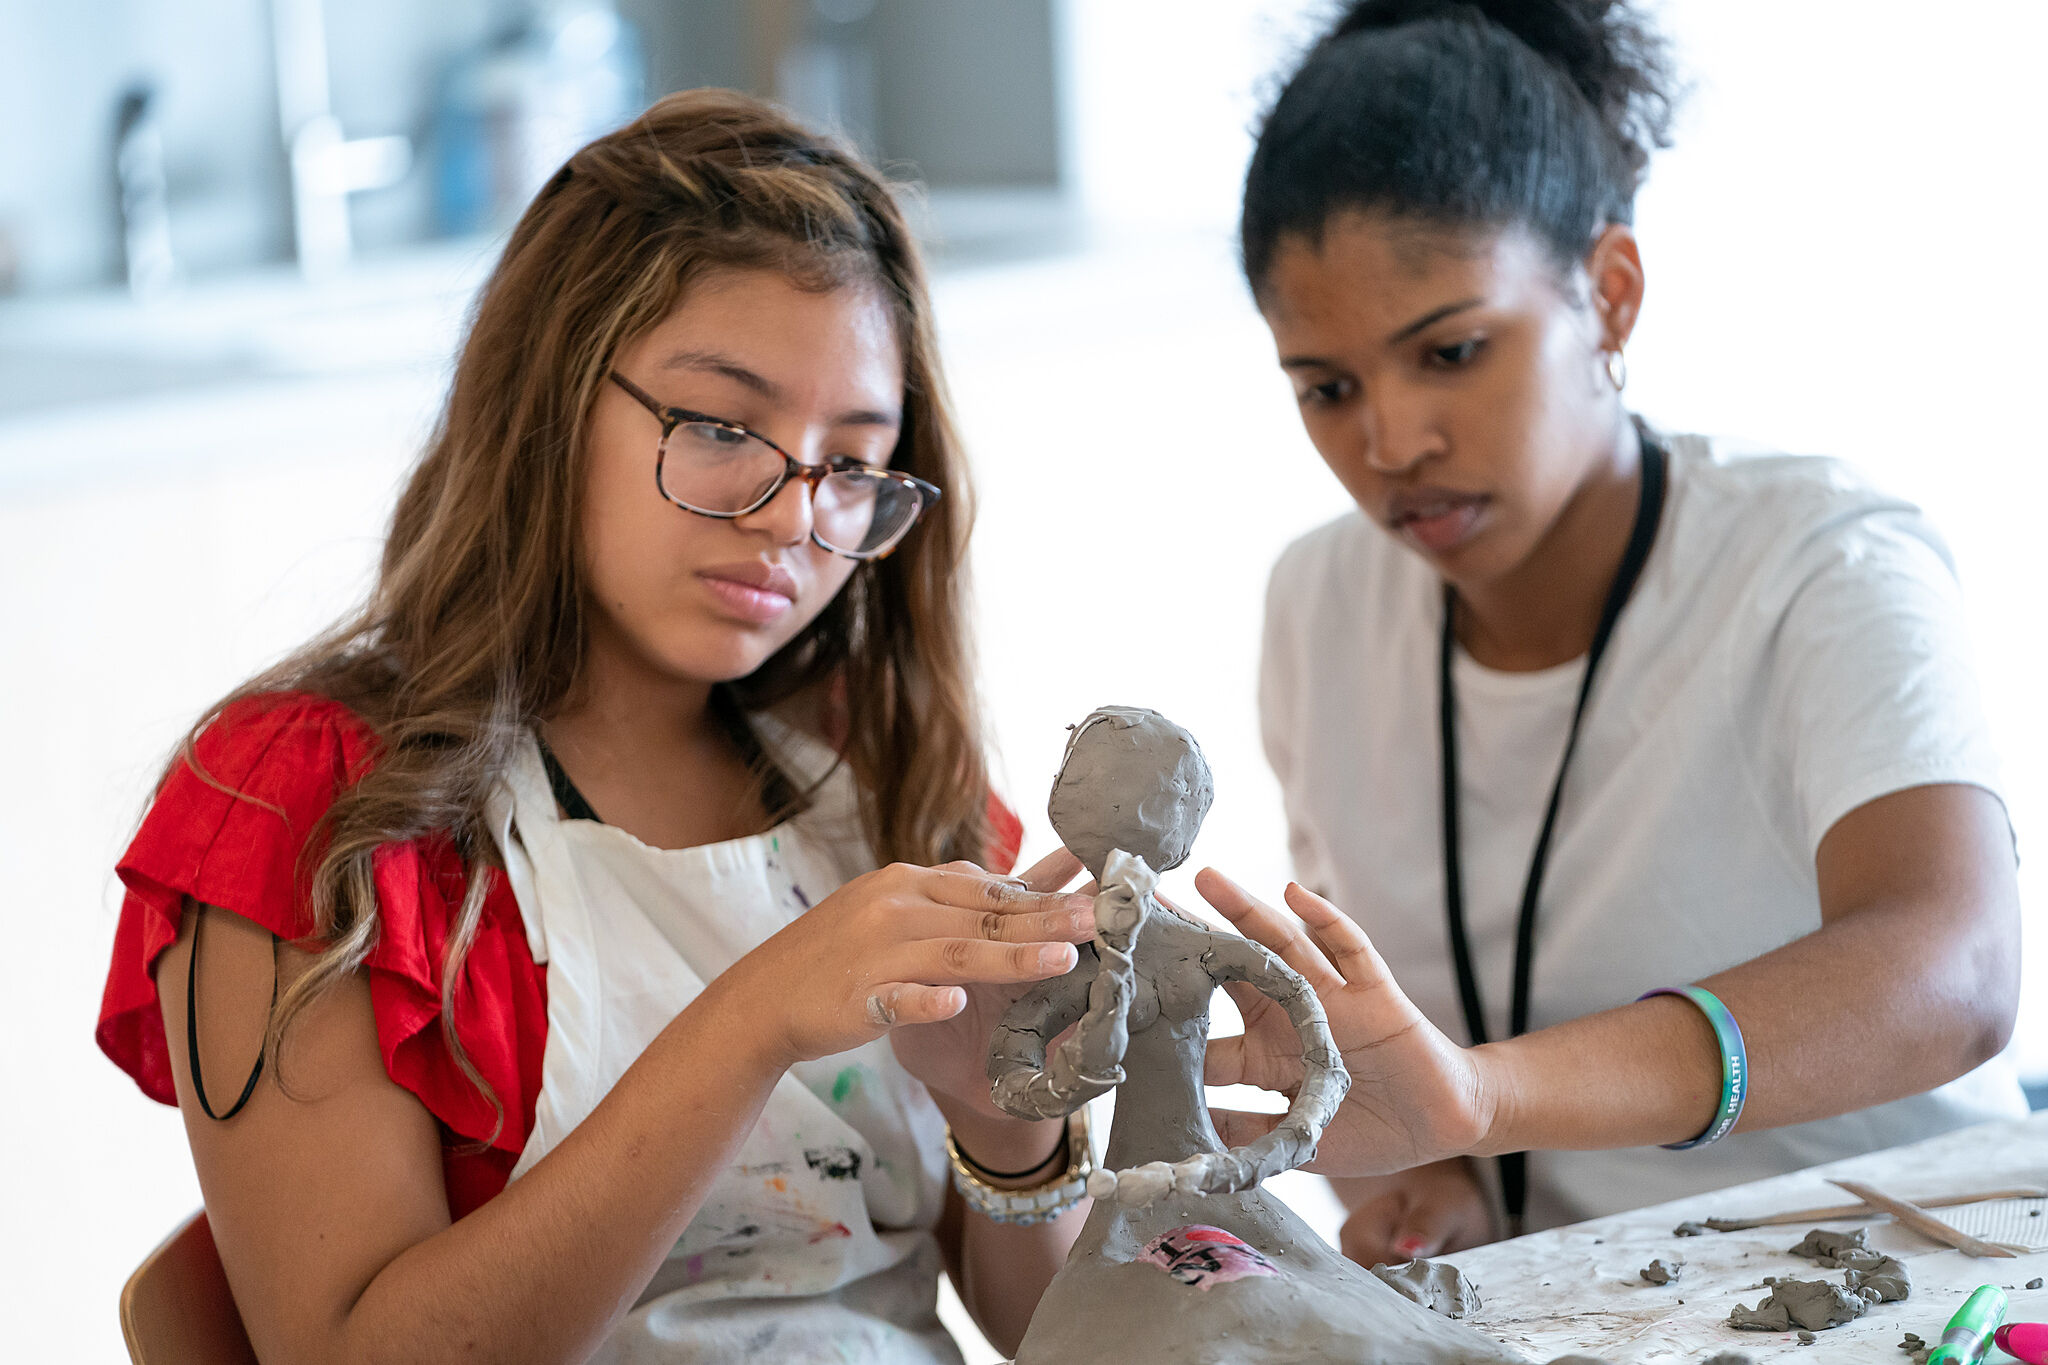 Teens creating a sculpture.